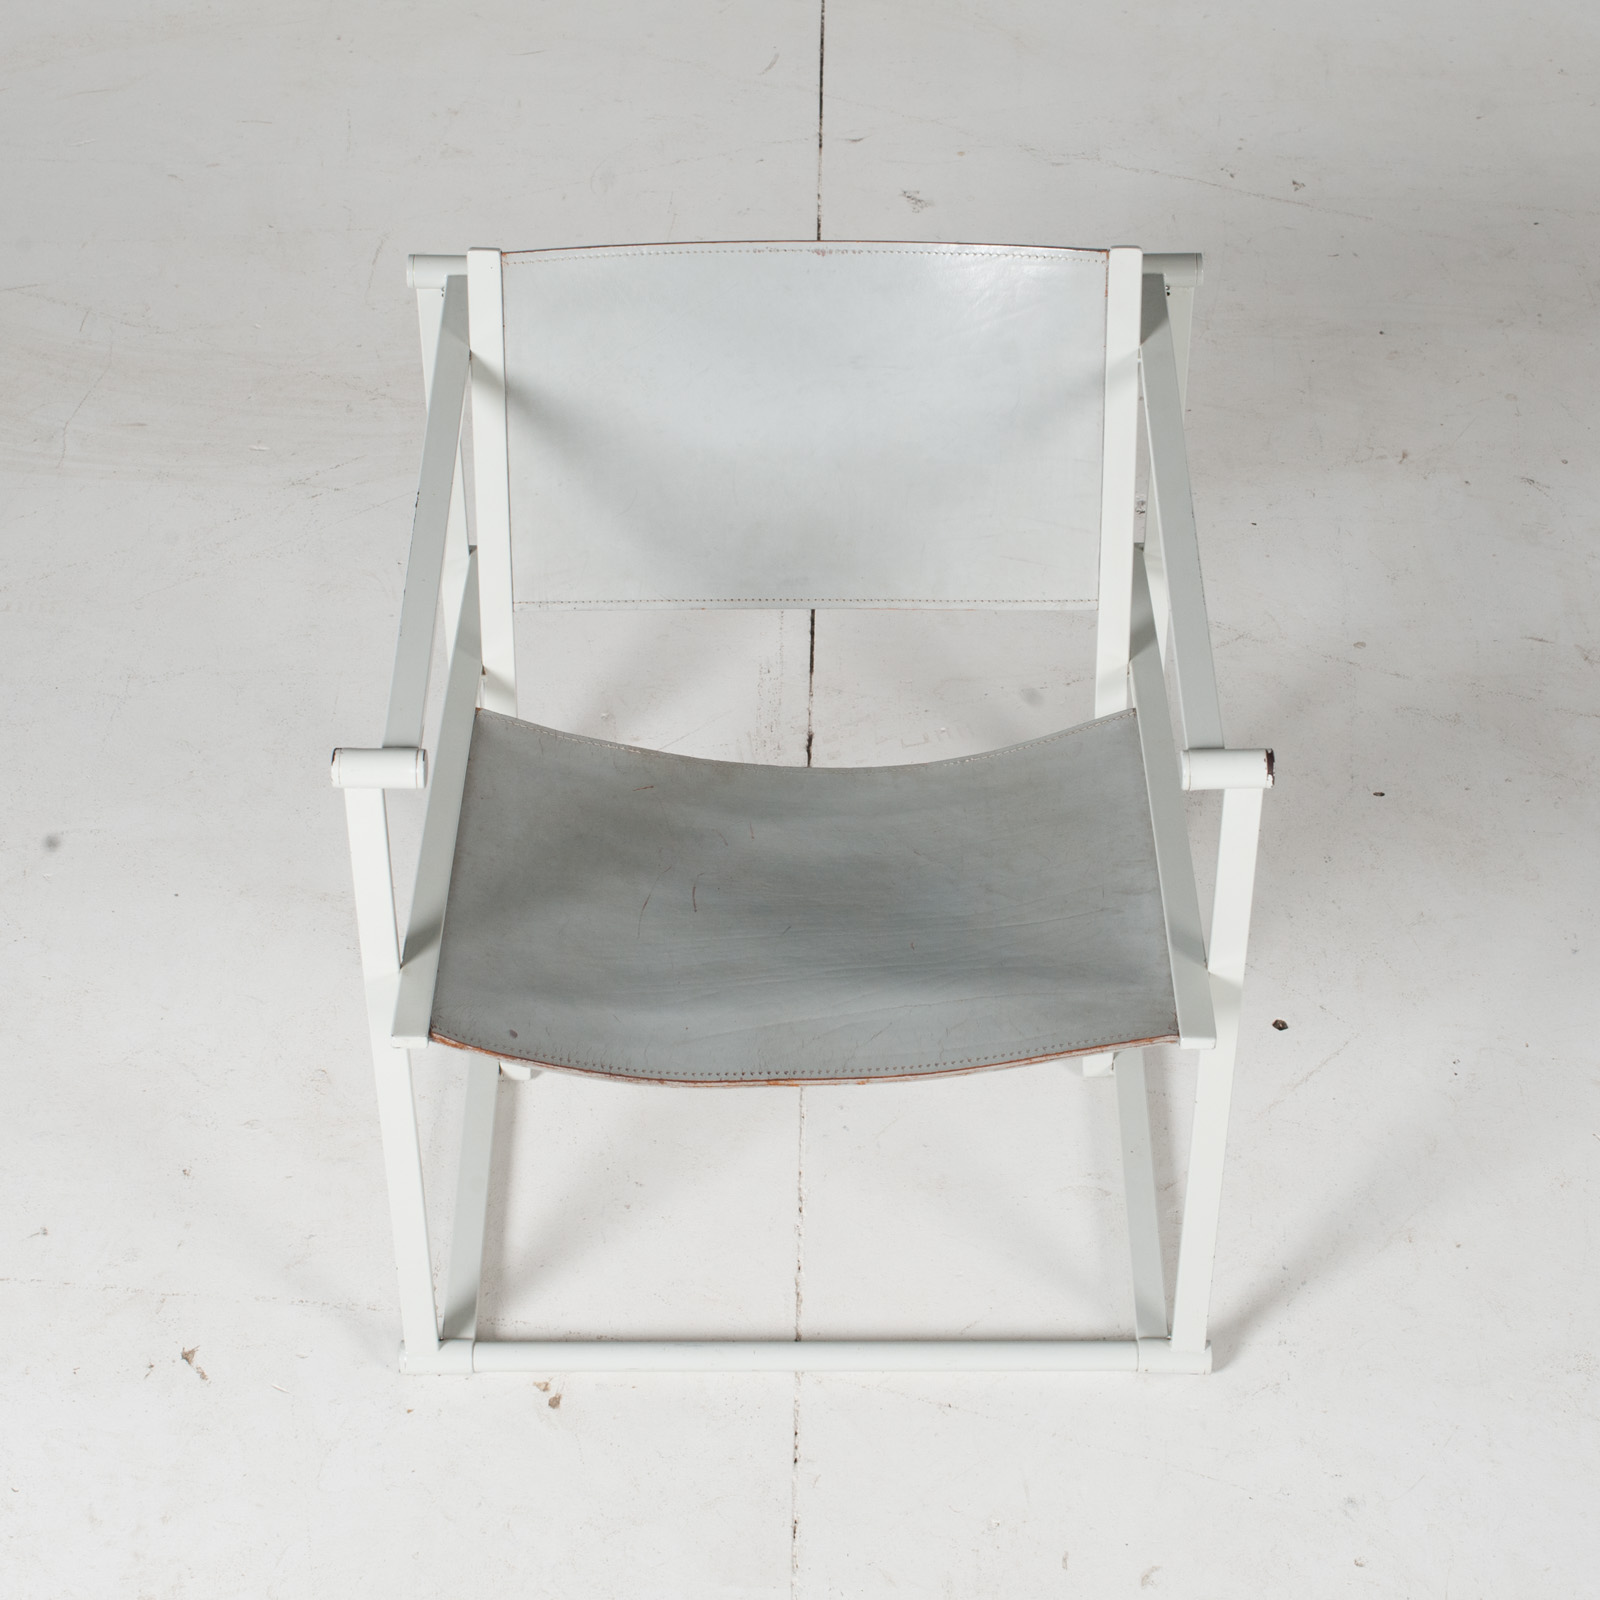 Fm60 Cubic Chairs In White Steel With Grey Leather By Radboud Van Beekum For Pastoe, The Netherlands3